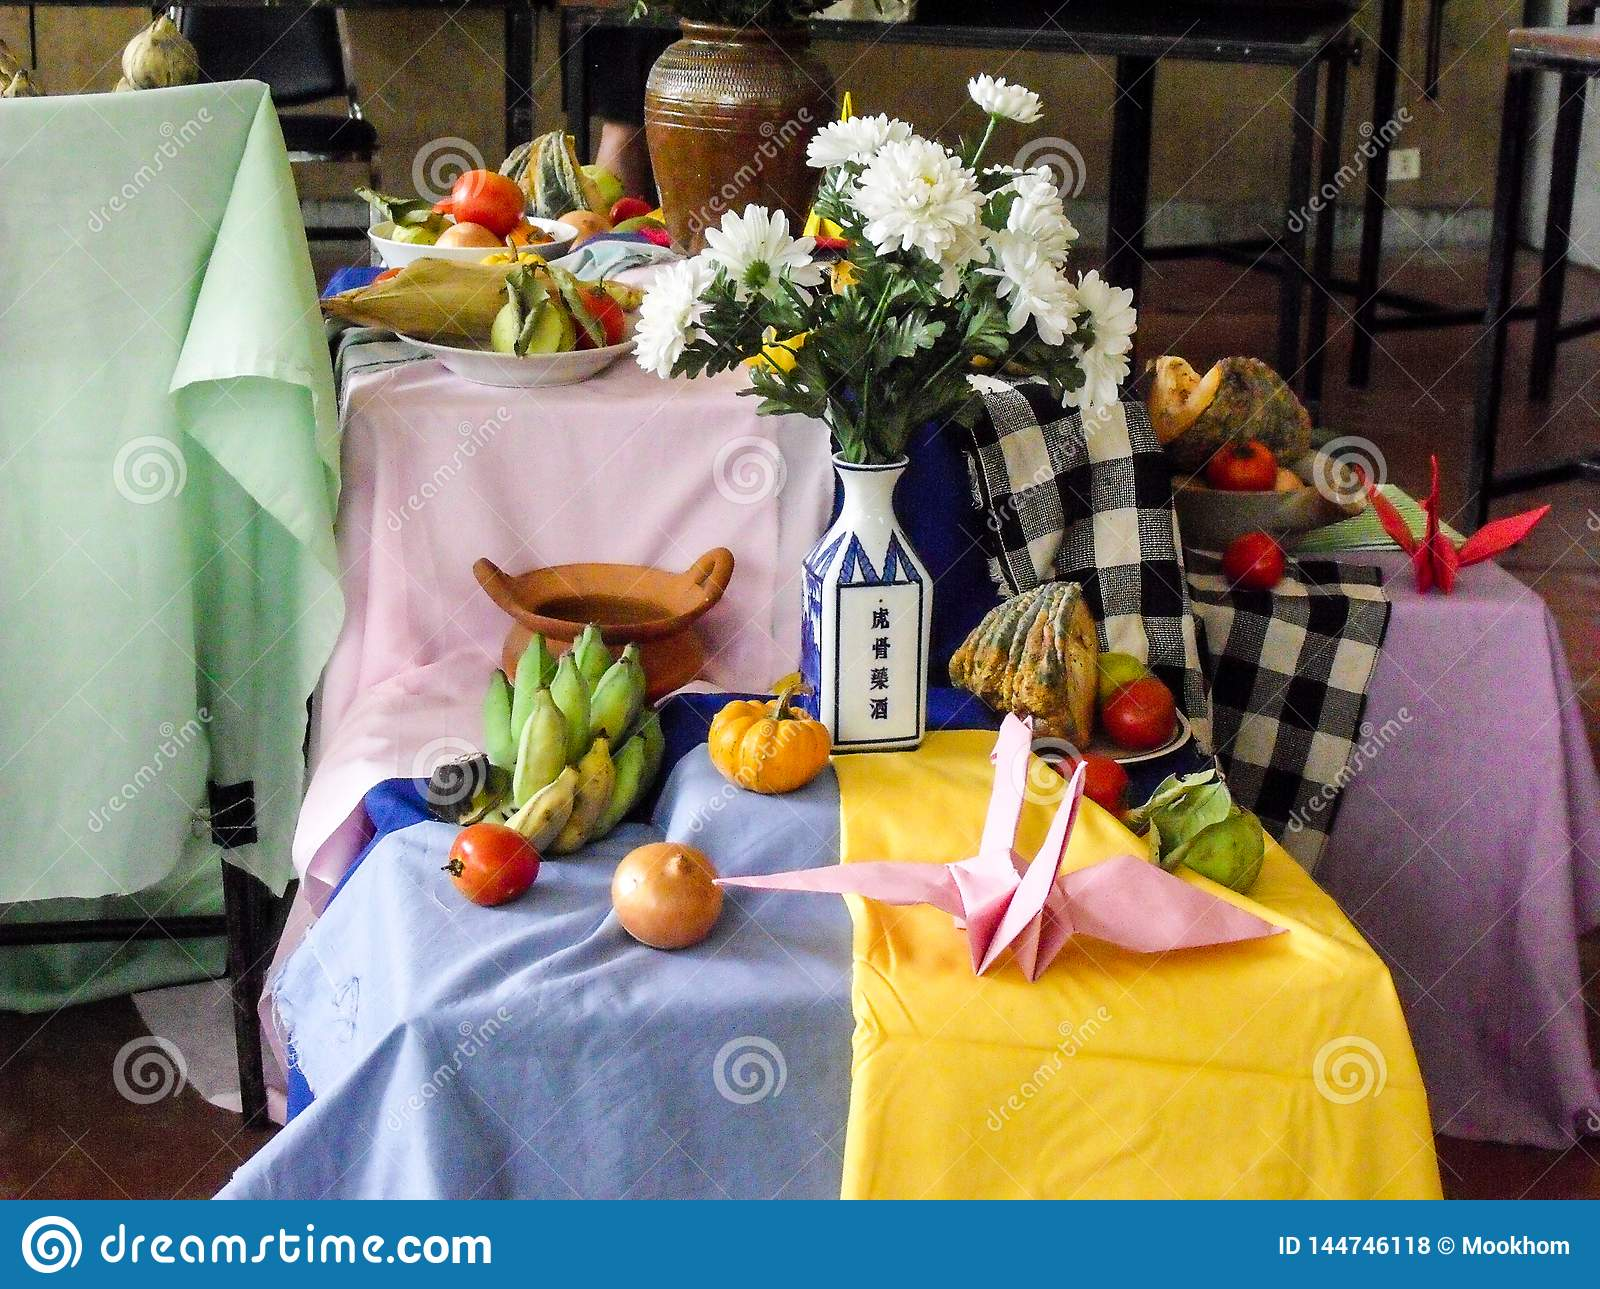 Still Life Flowers And Fruits In For Painting Lessons Stock Photo Image Of Education Flora 144746118